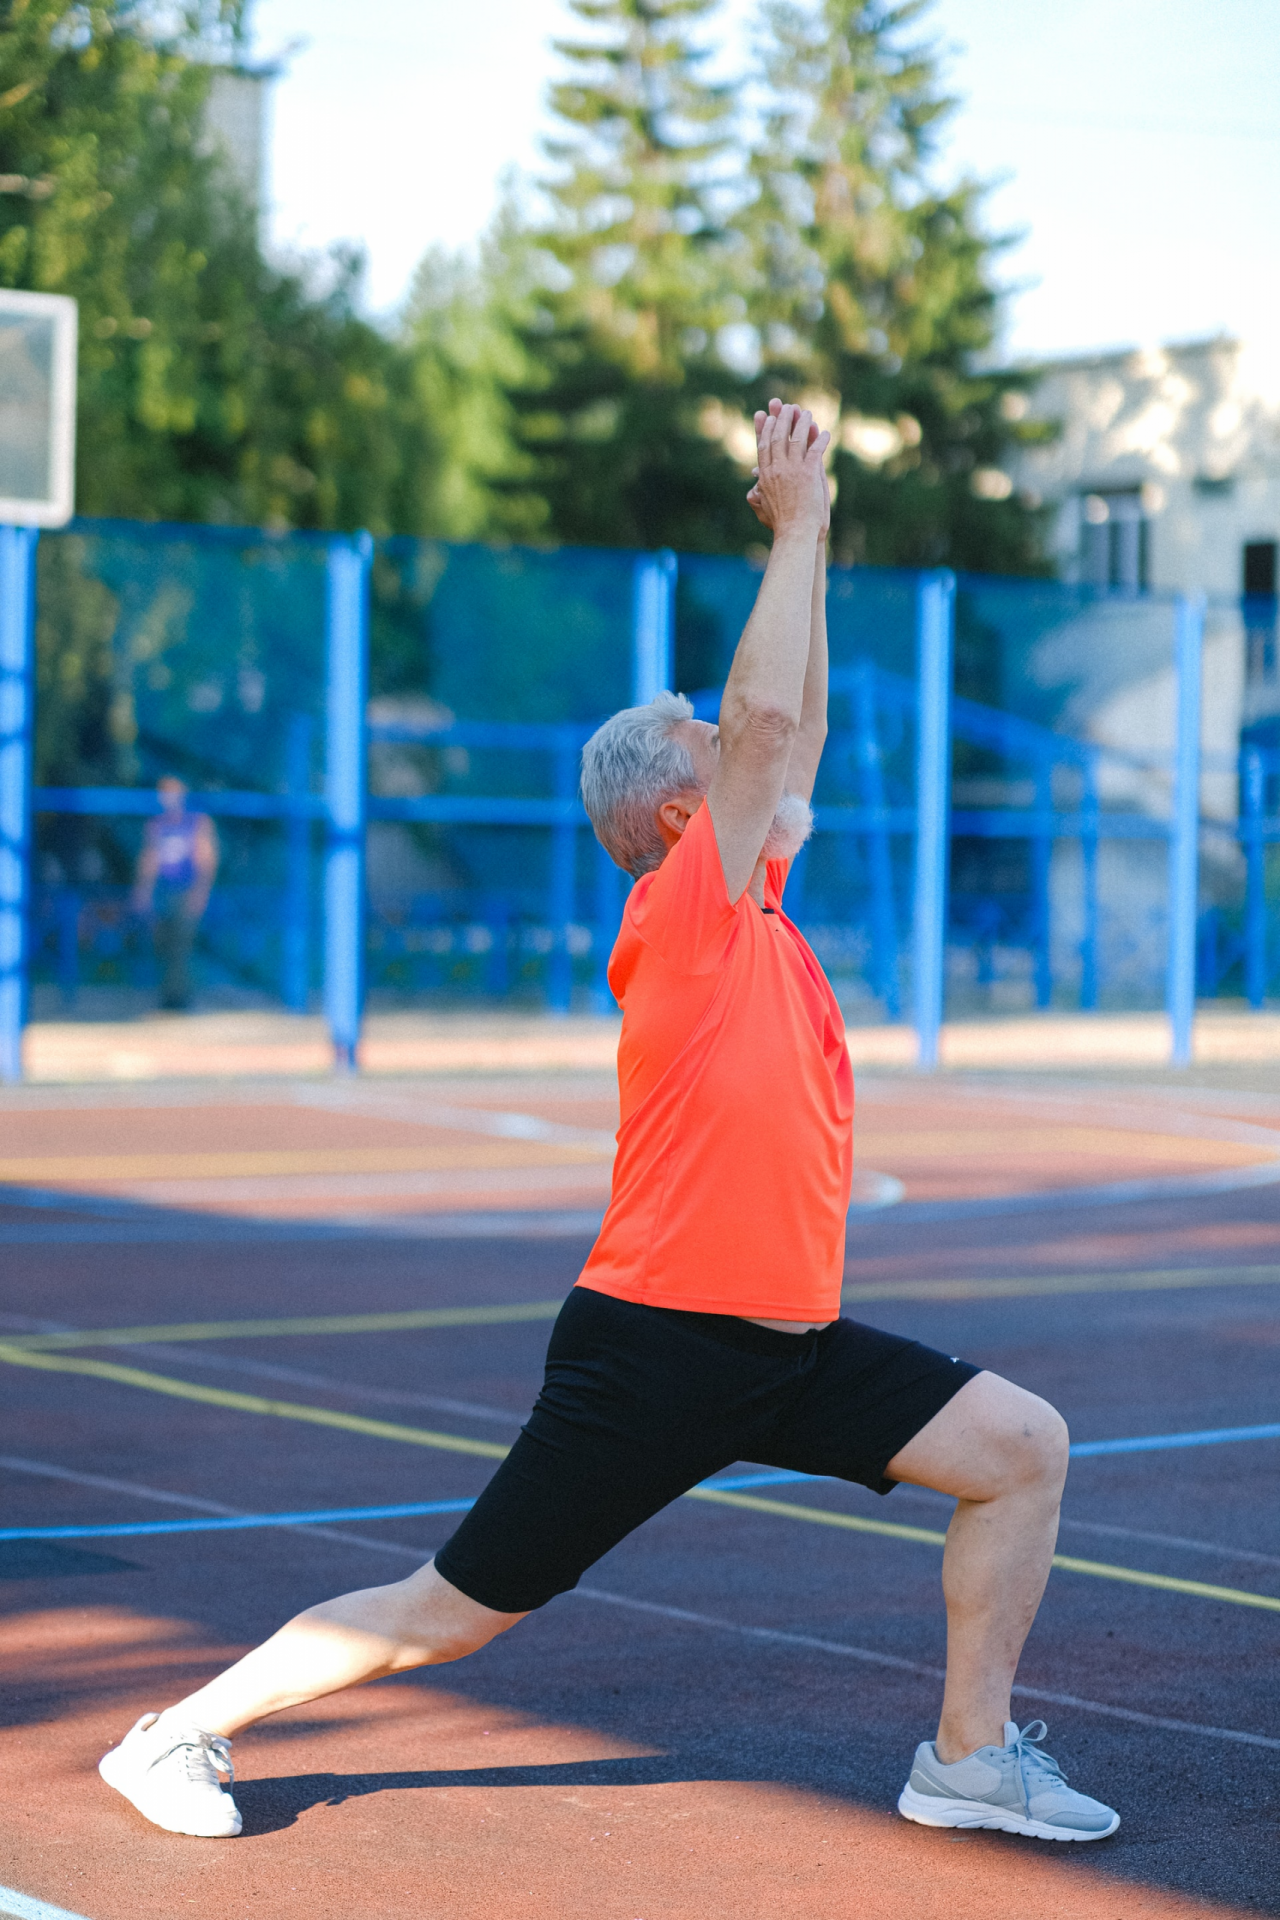 Over 50? The Full-Body Driveway Workout Is Here | Correxiko - The Collagen Experts